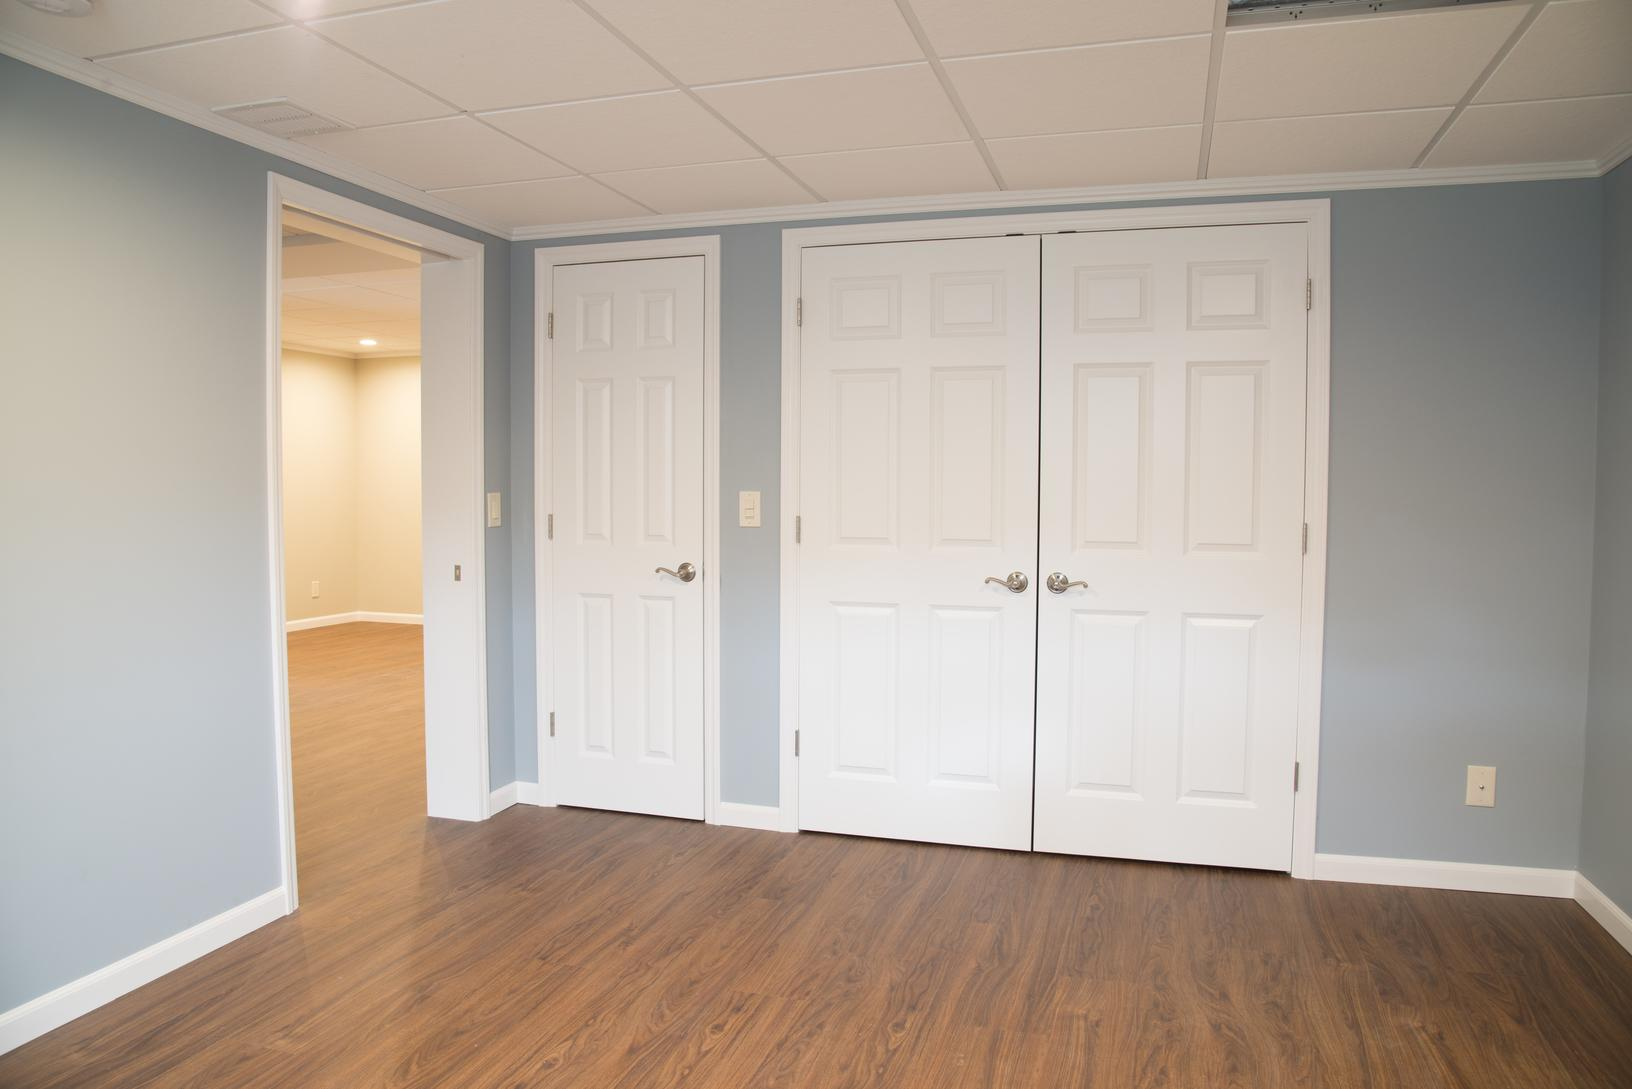 Bedroom in Newly Finished Basement